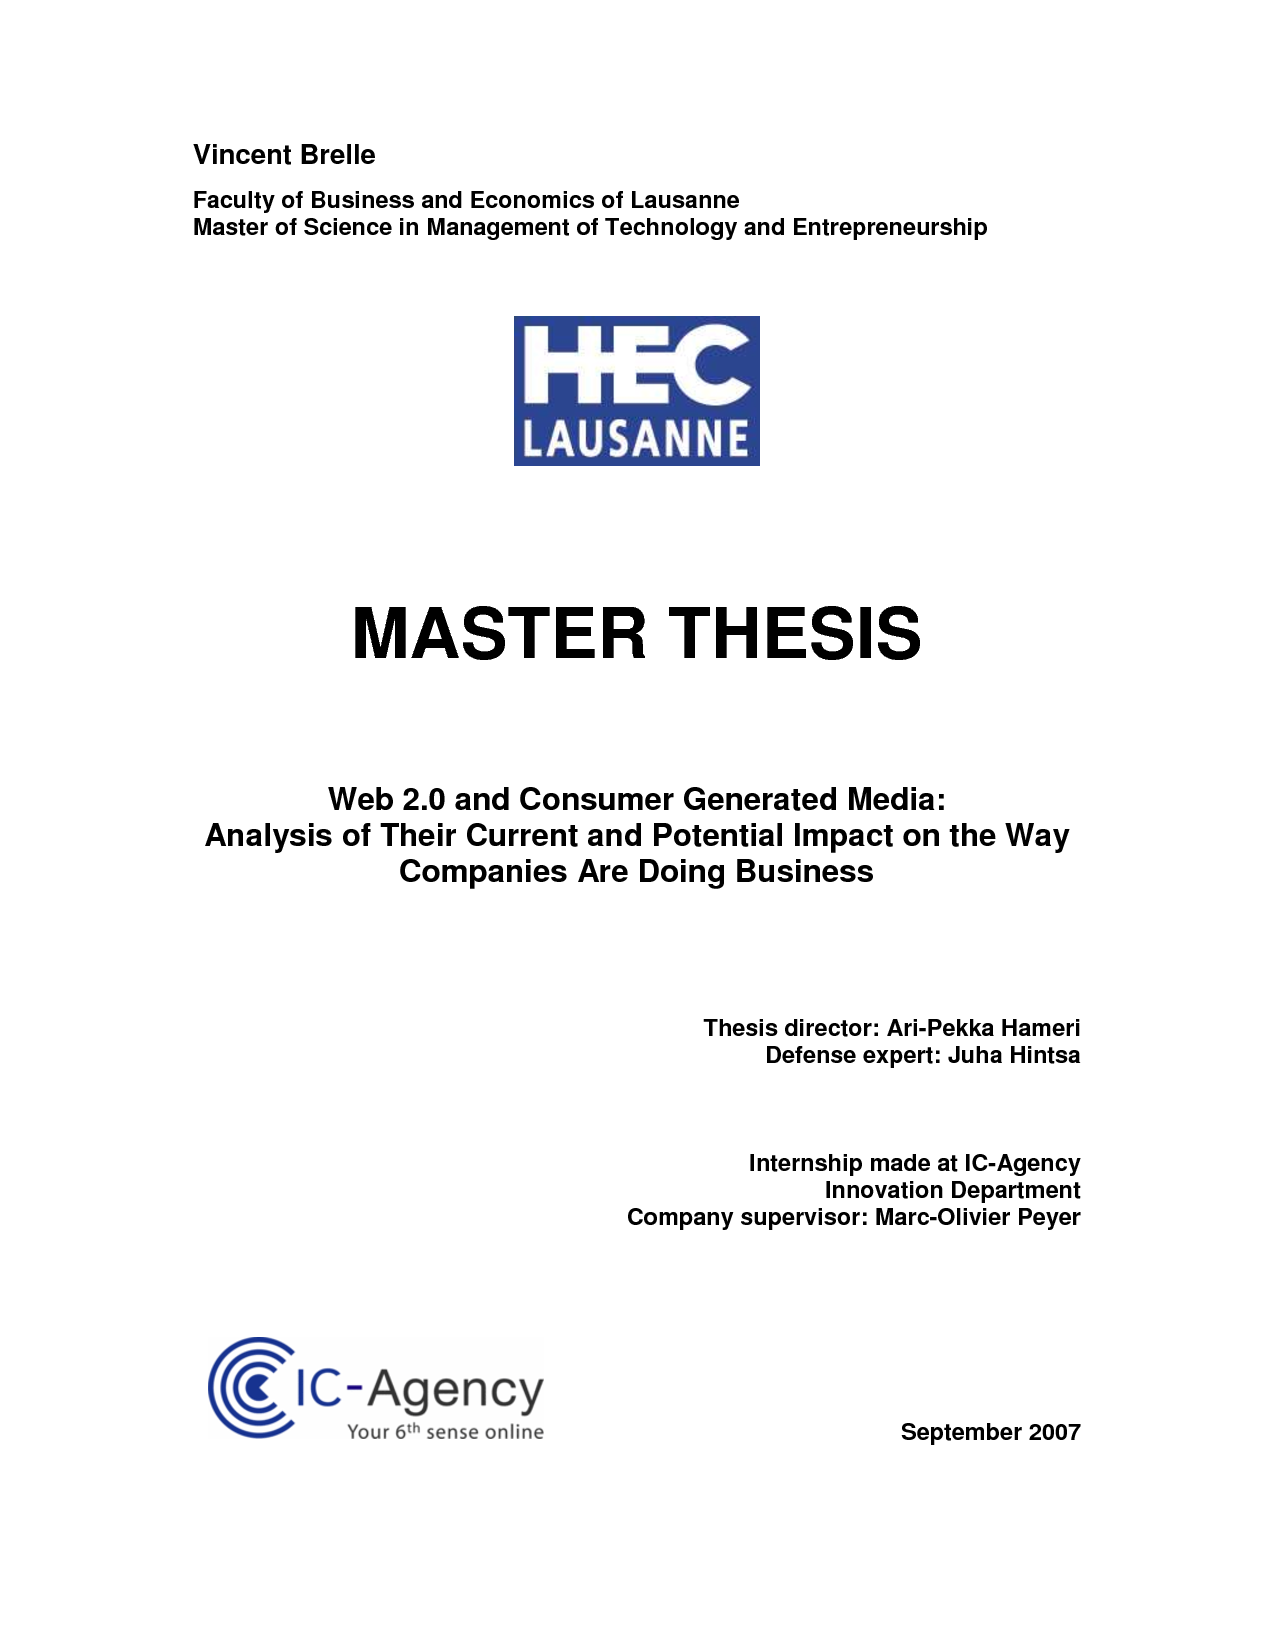 Cover sheet master thesis sample